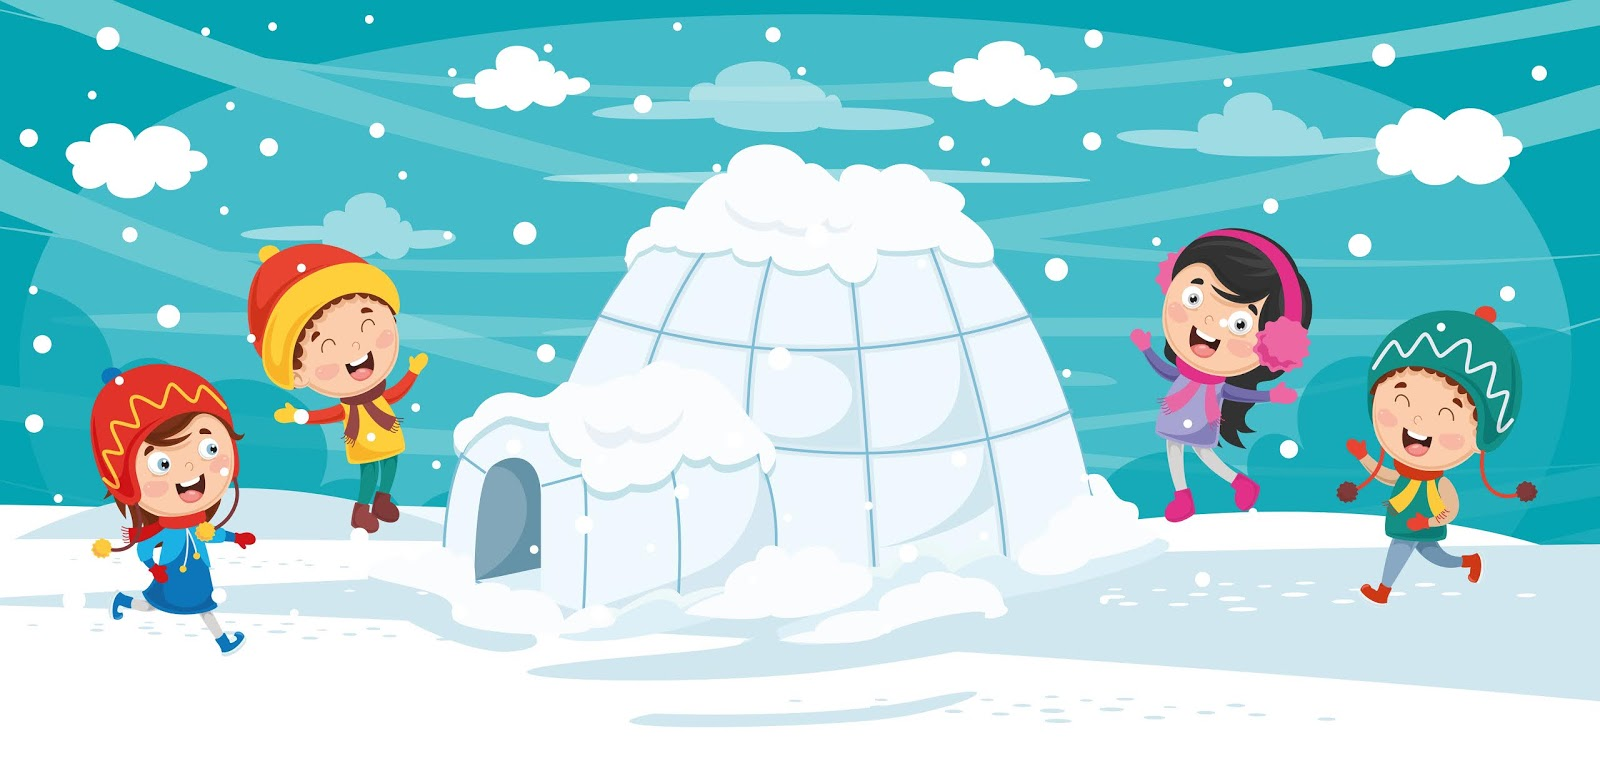 Vector Illustration Igloo Free Download Vector CDR, AI, EPS and PNG Formats